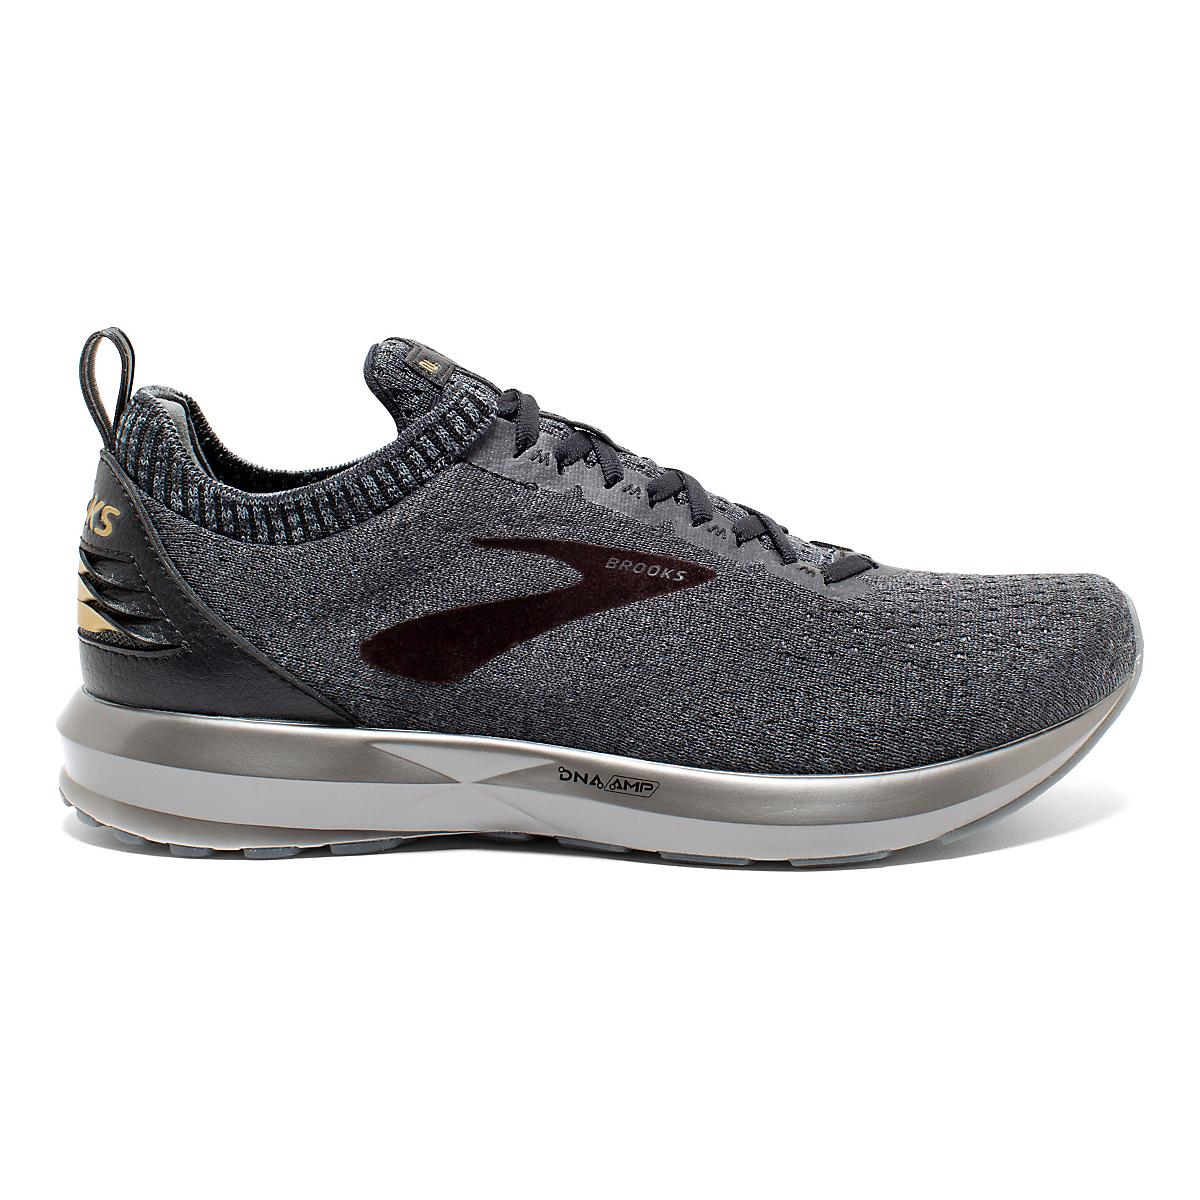 Mens Brooks Levitate 2 LE Running Shoe at Road Runner Sports 876feb27e